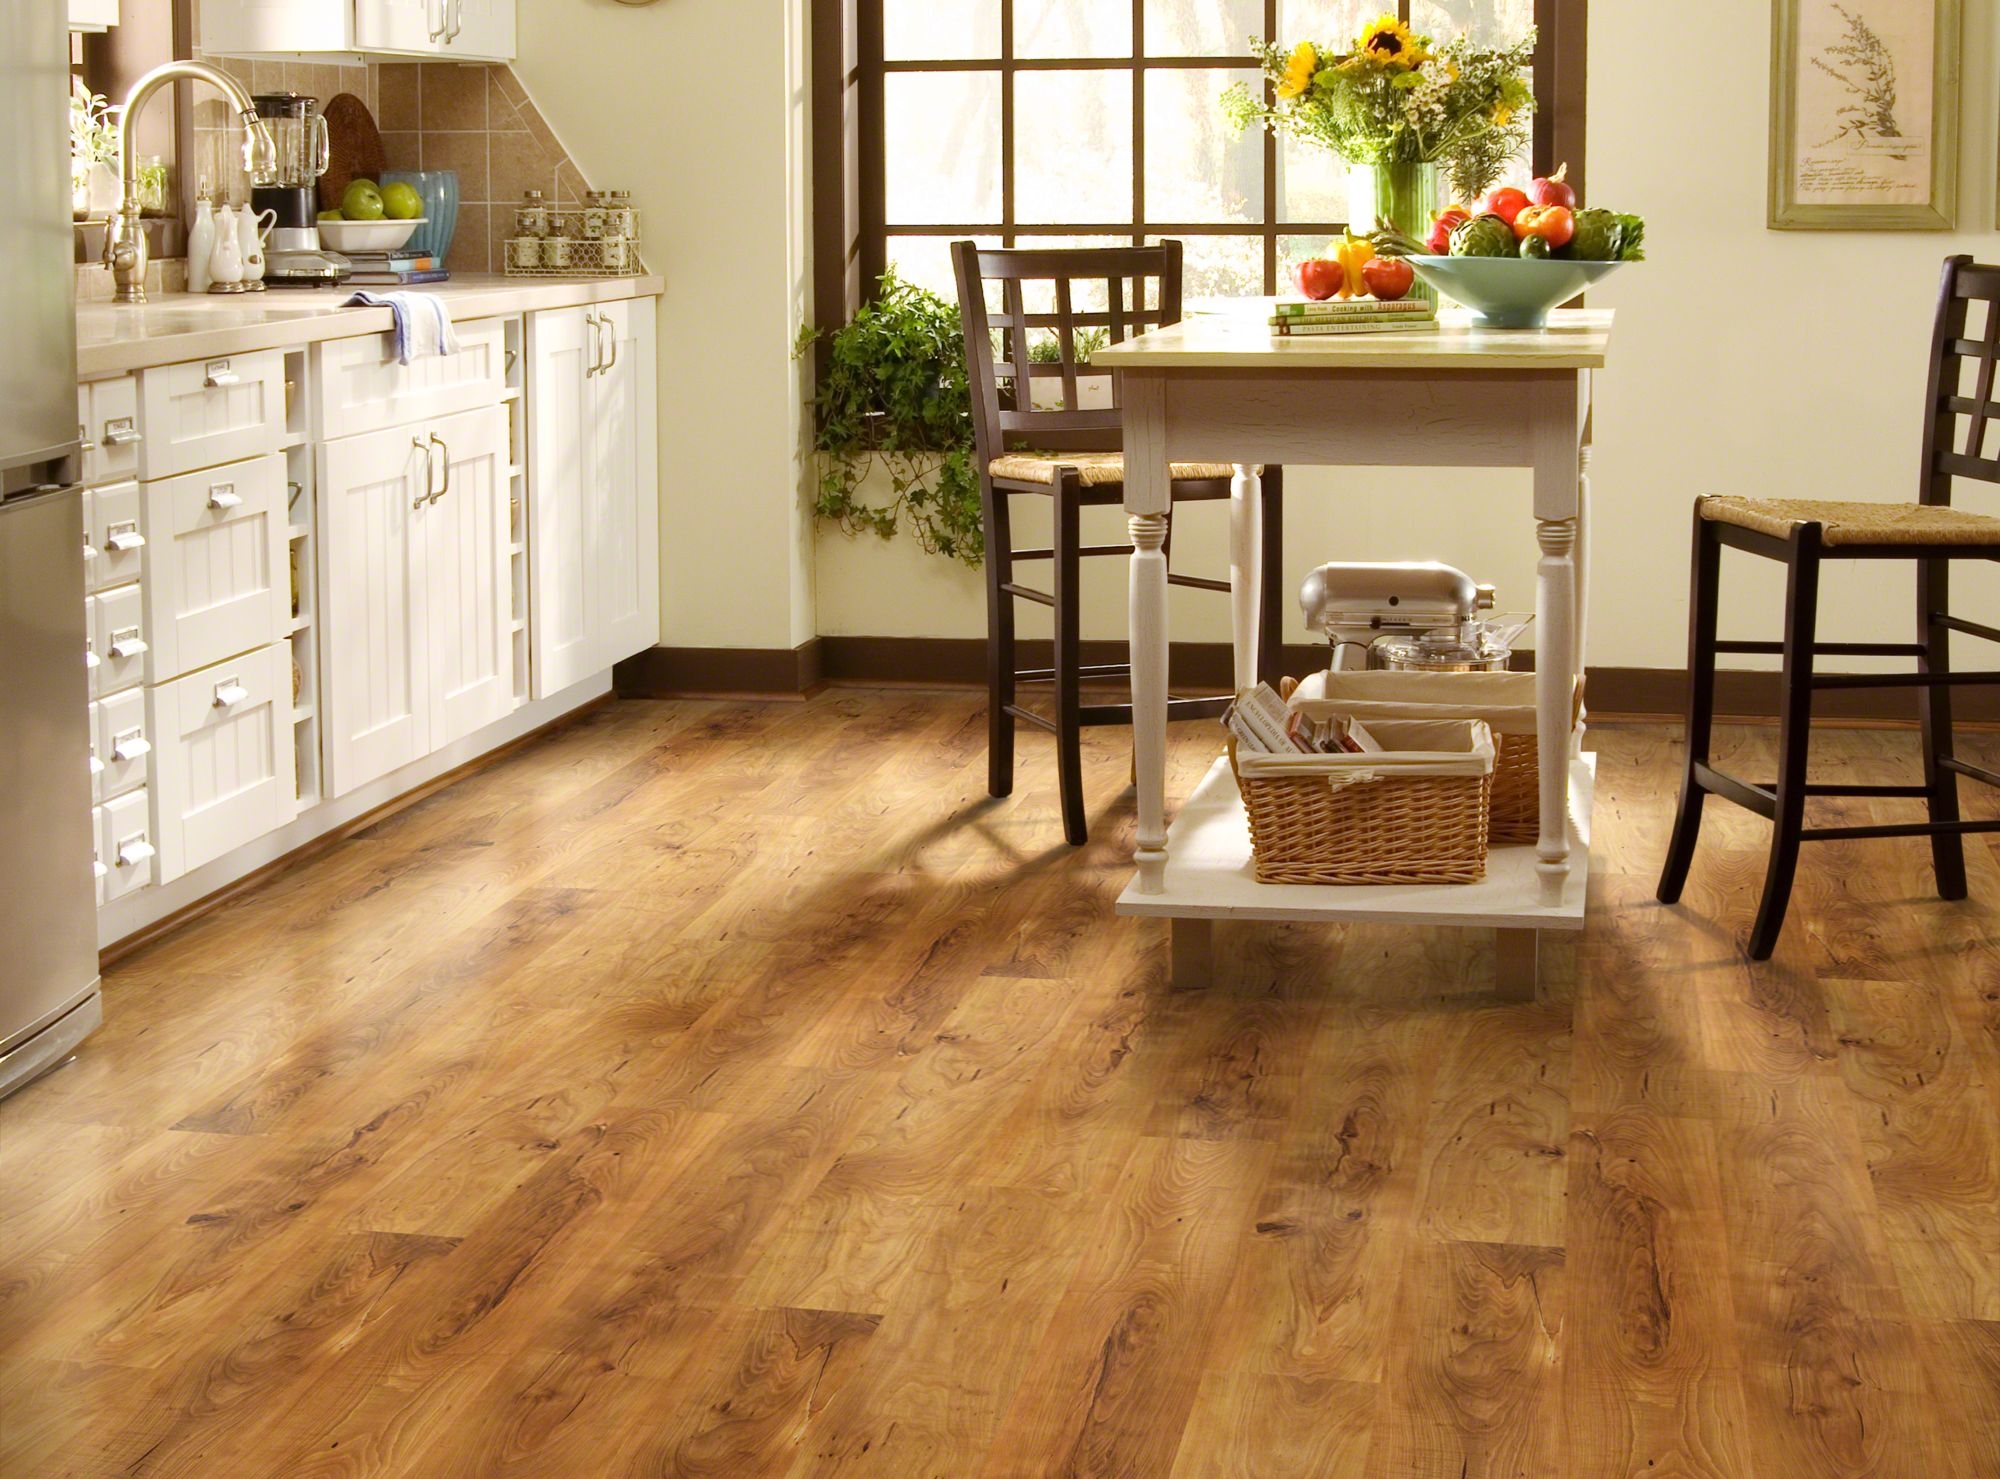 super-idea-shaw-floors-laminate-3-room-flooring-special-problems-installation-clean-where-are-made-good-by.jpg